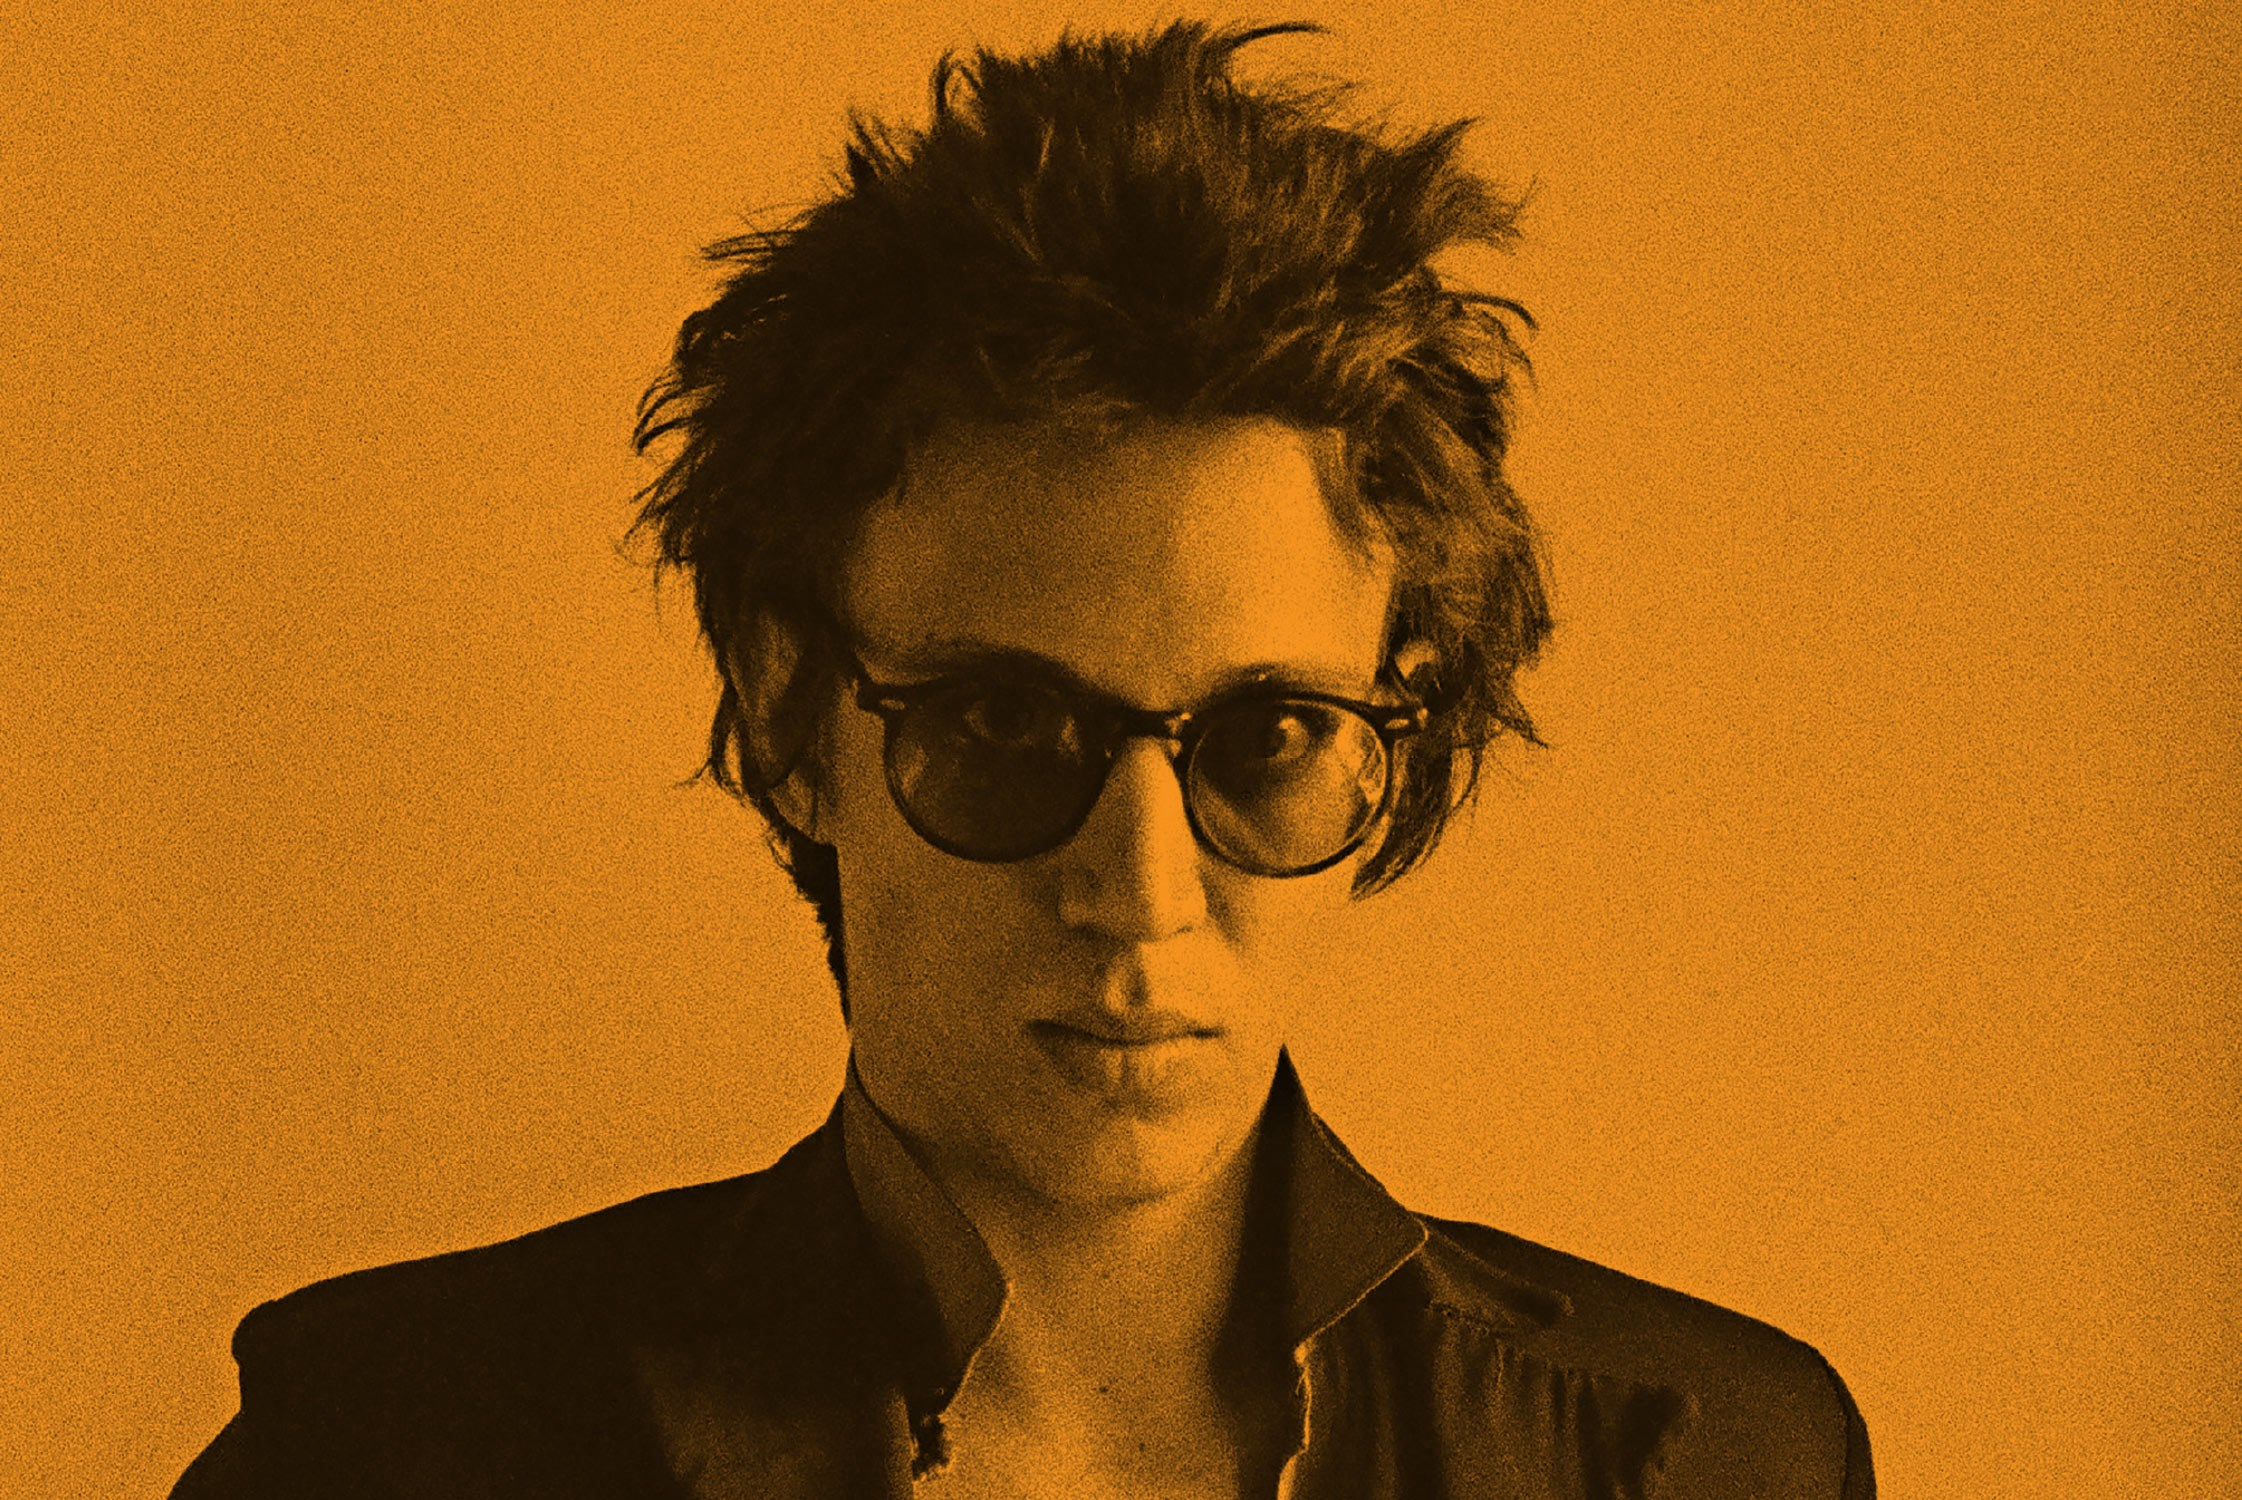 richard_hell_&_the_voidoids_thumbnail_3.jpg